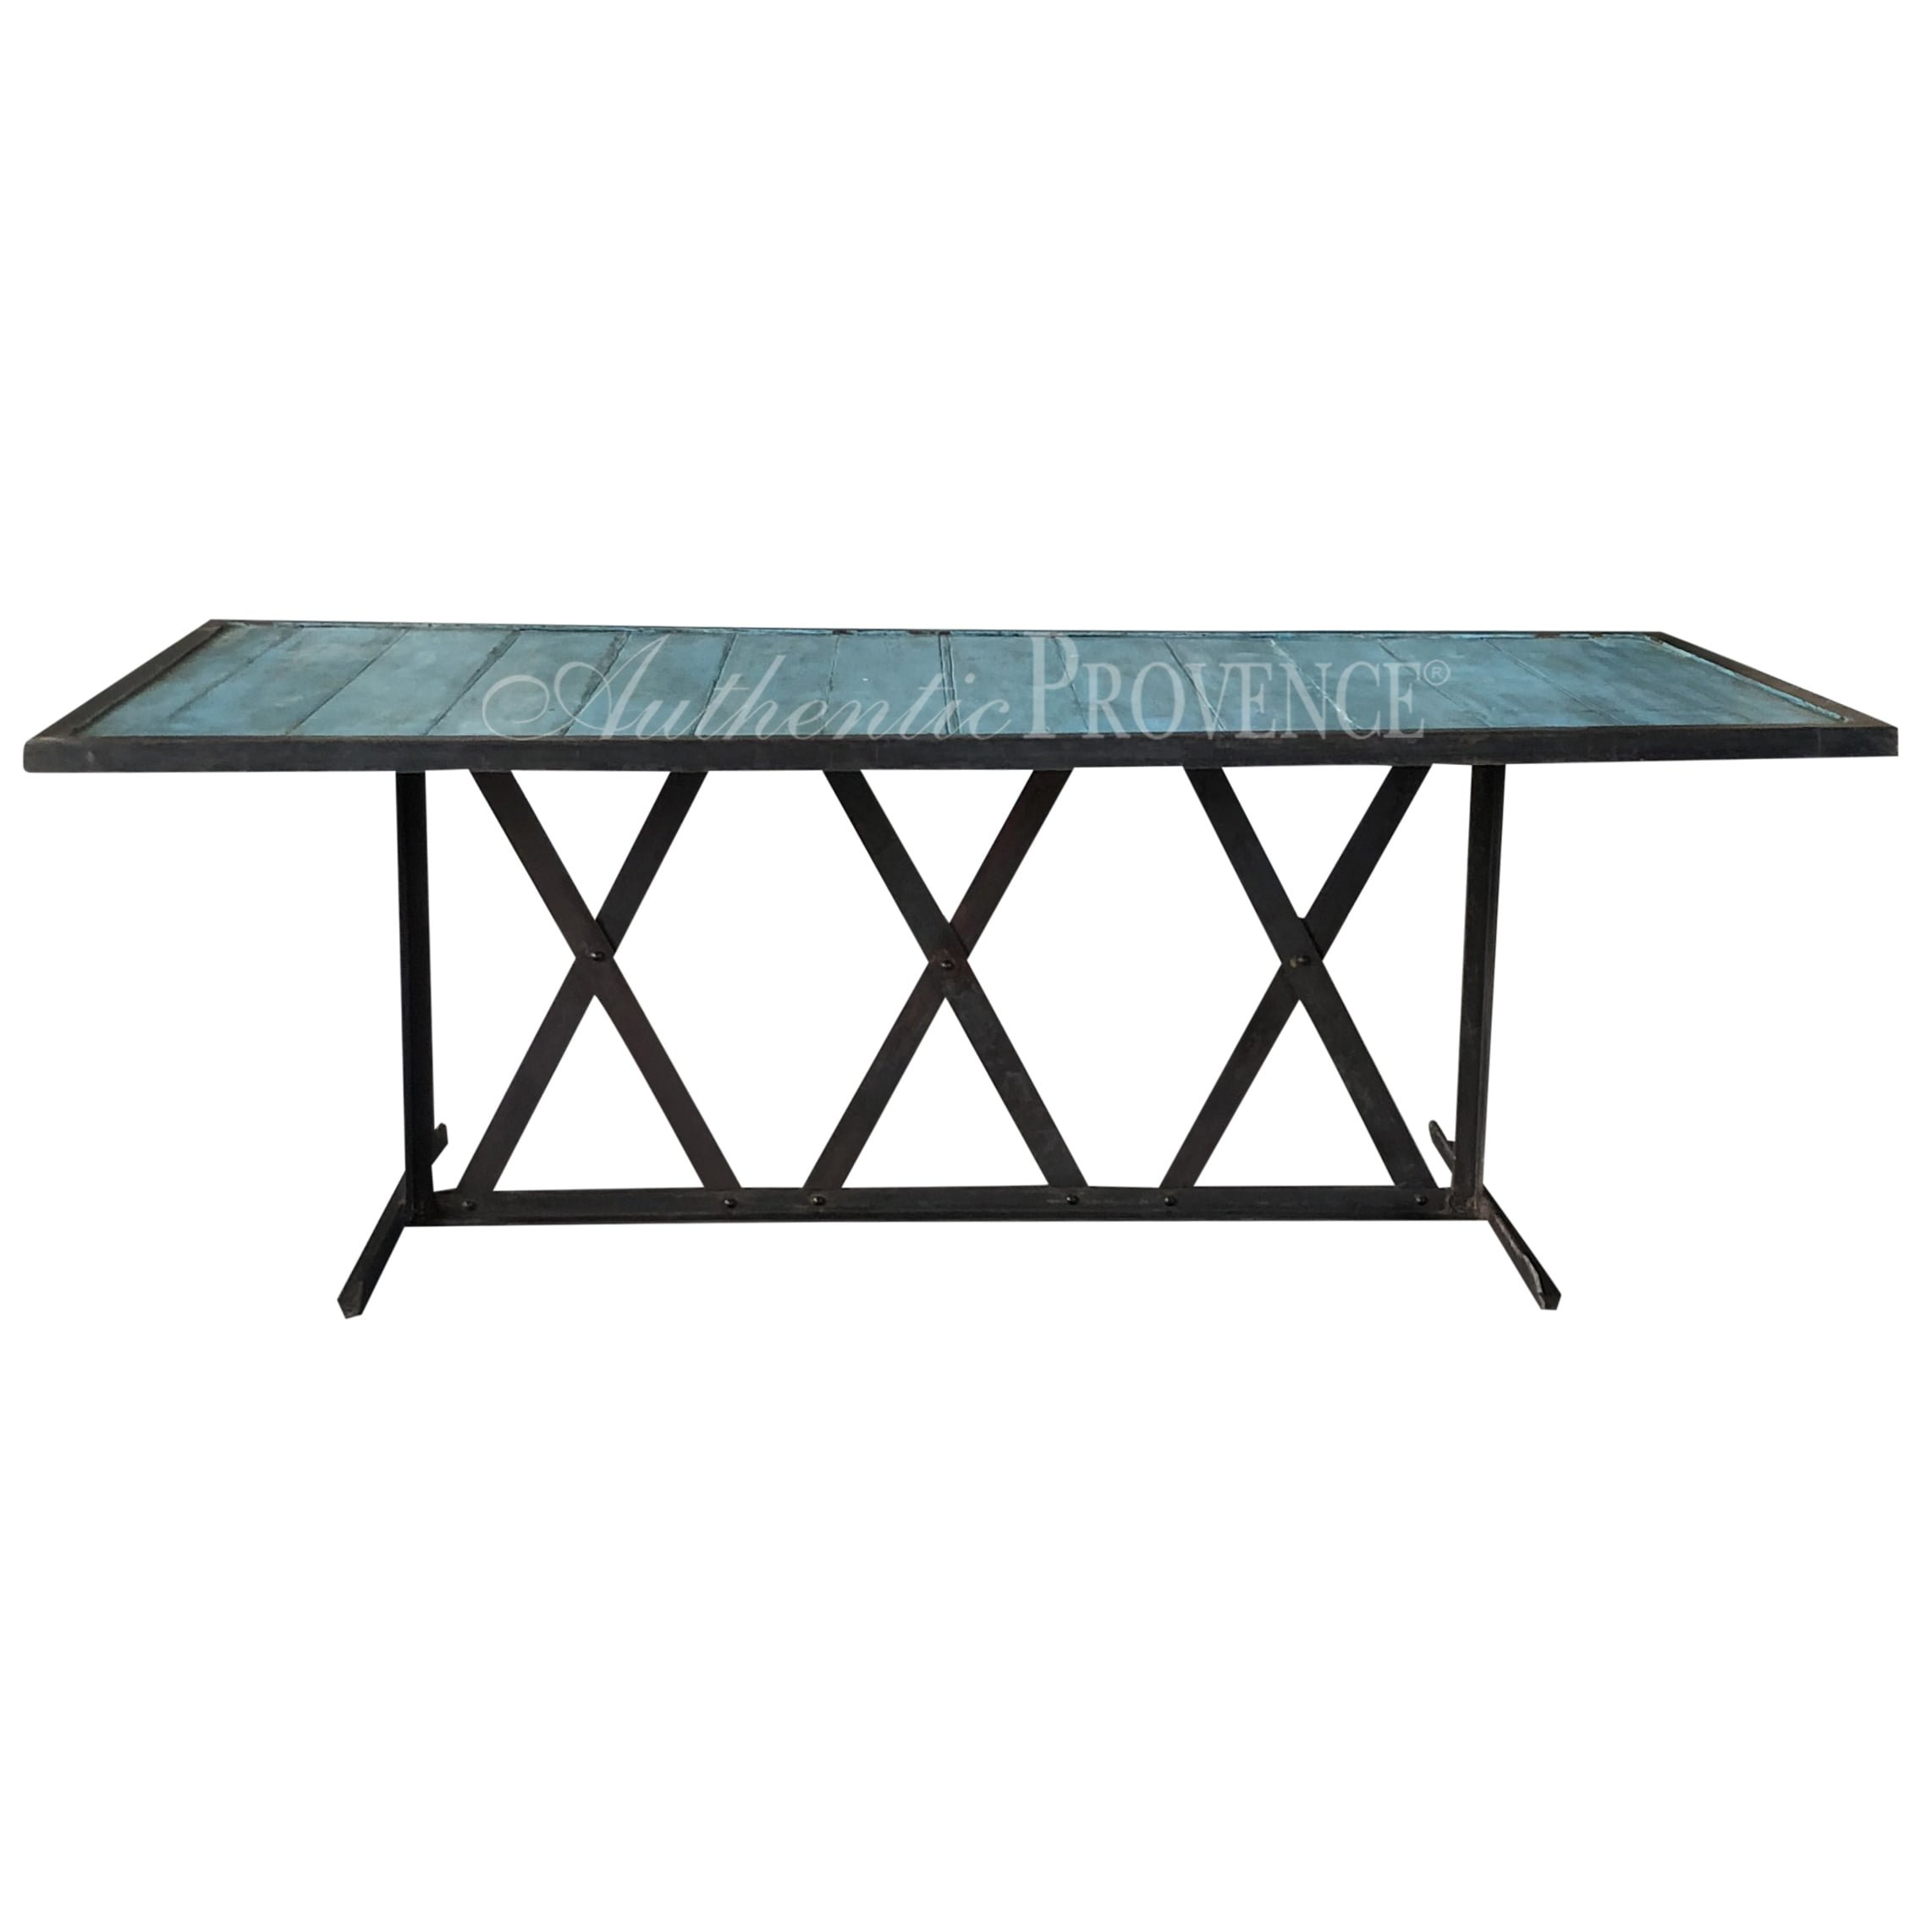 A rectangular dining table with turquoise painted wooden inlaid slats and iron base